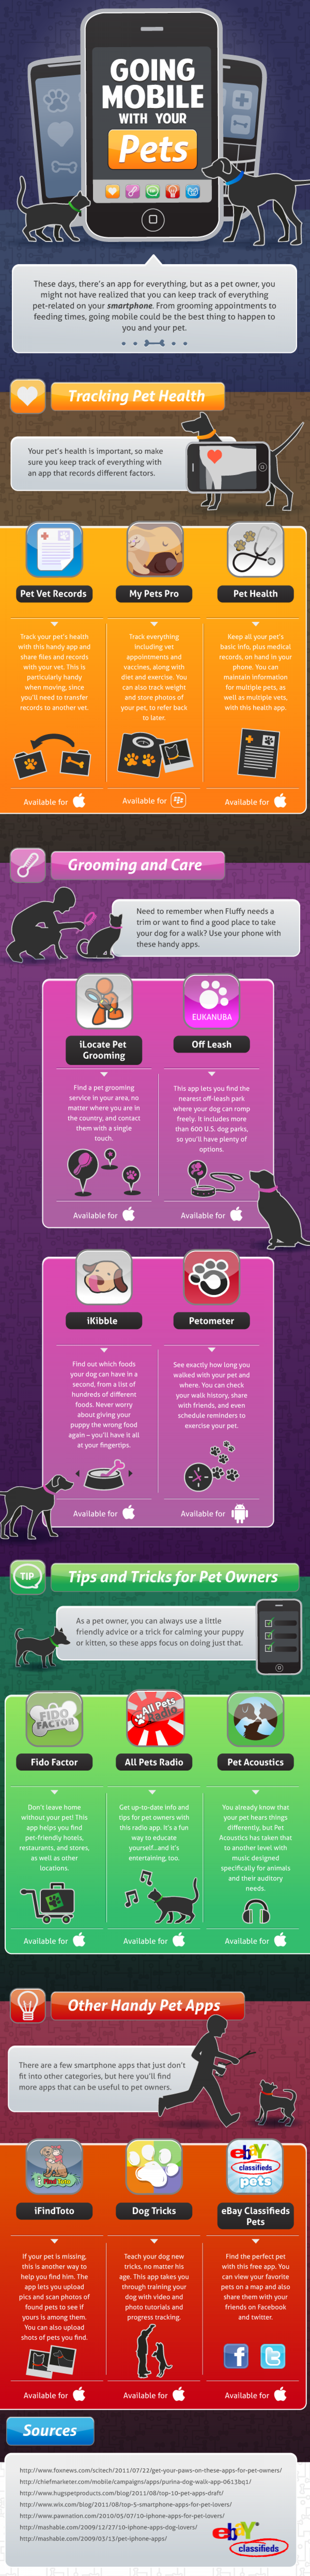 Going Mobile With Your Pets Infographic